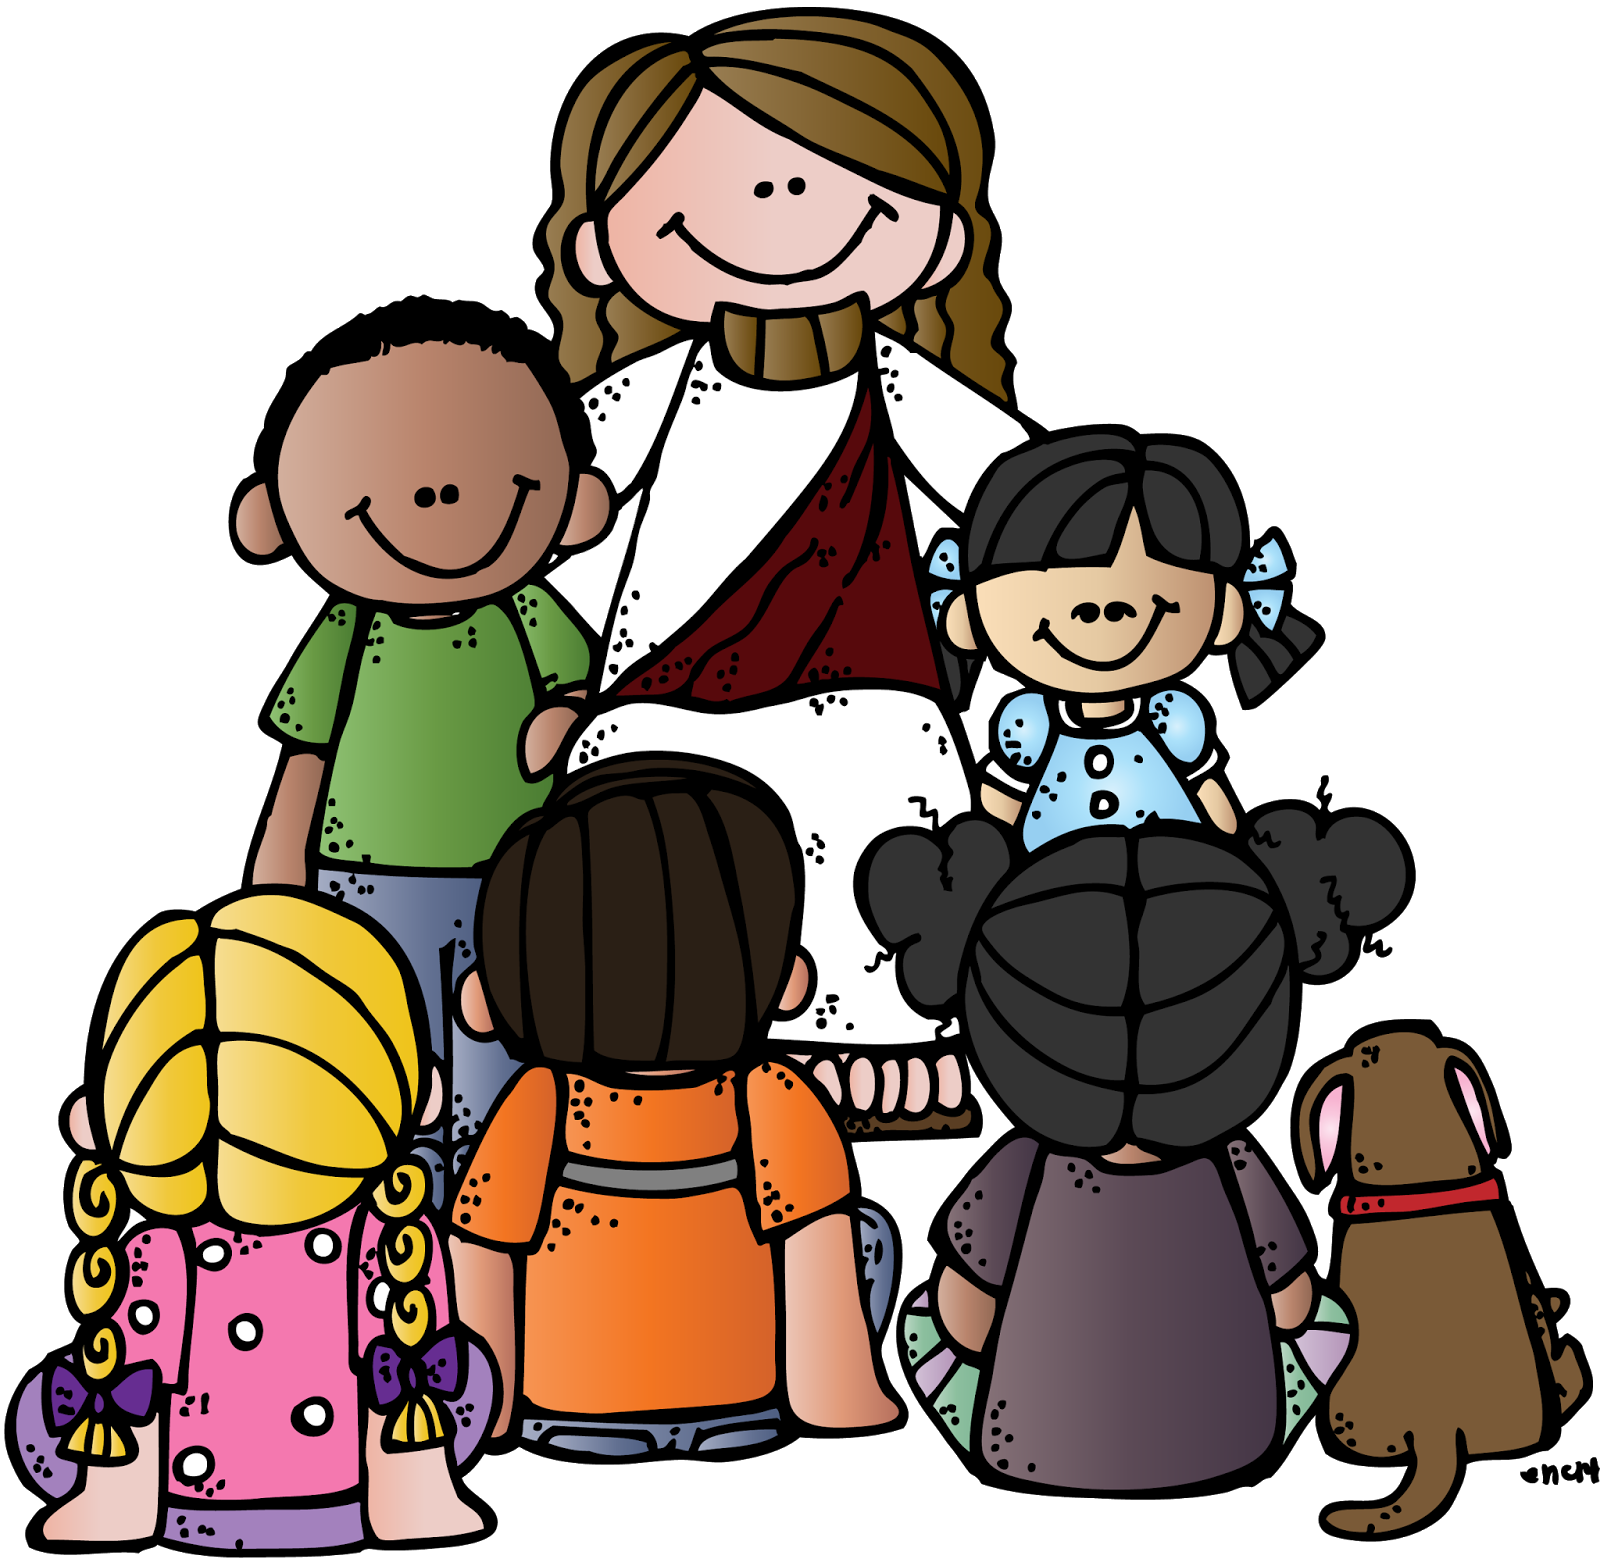 Kids with jesus clipart image freeuse stock Kids with jesus clipart - ClipartFest image freeuse stock